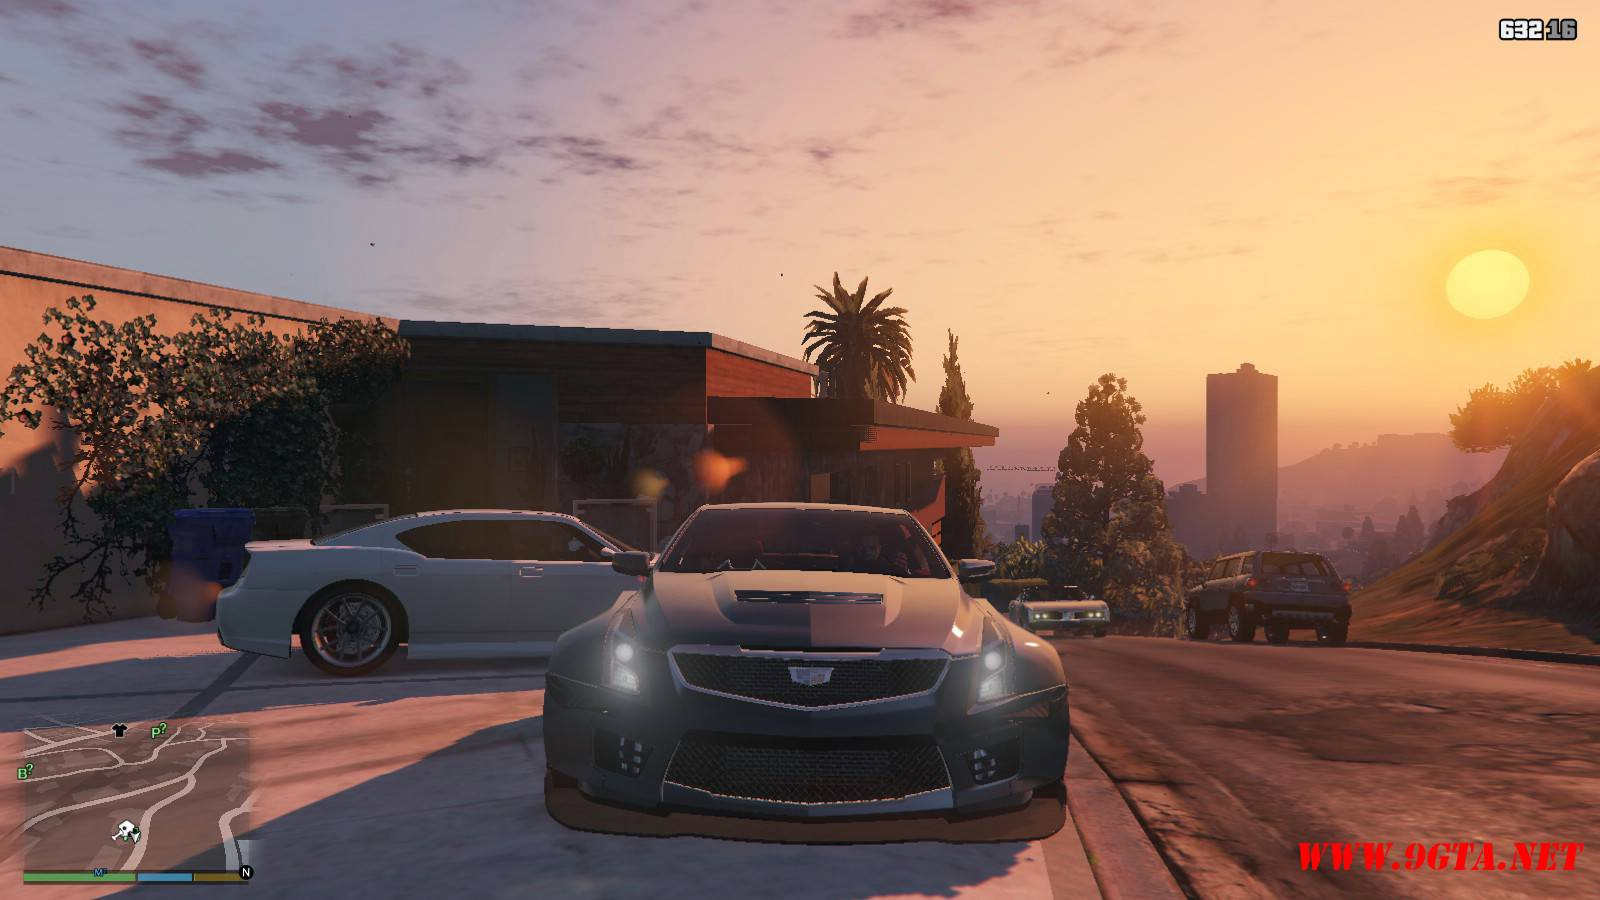 2016 Cadillac ATS-V Forza Edition Mod For GTA5 (10)